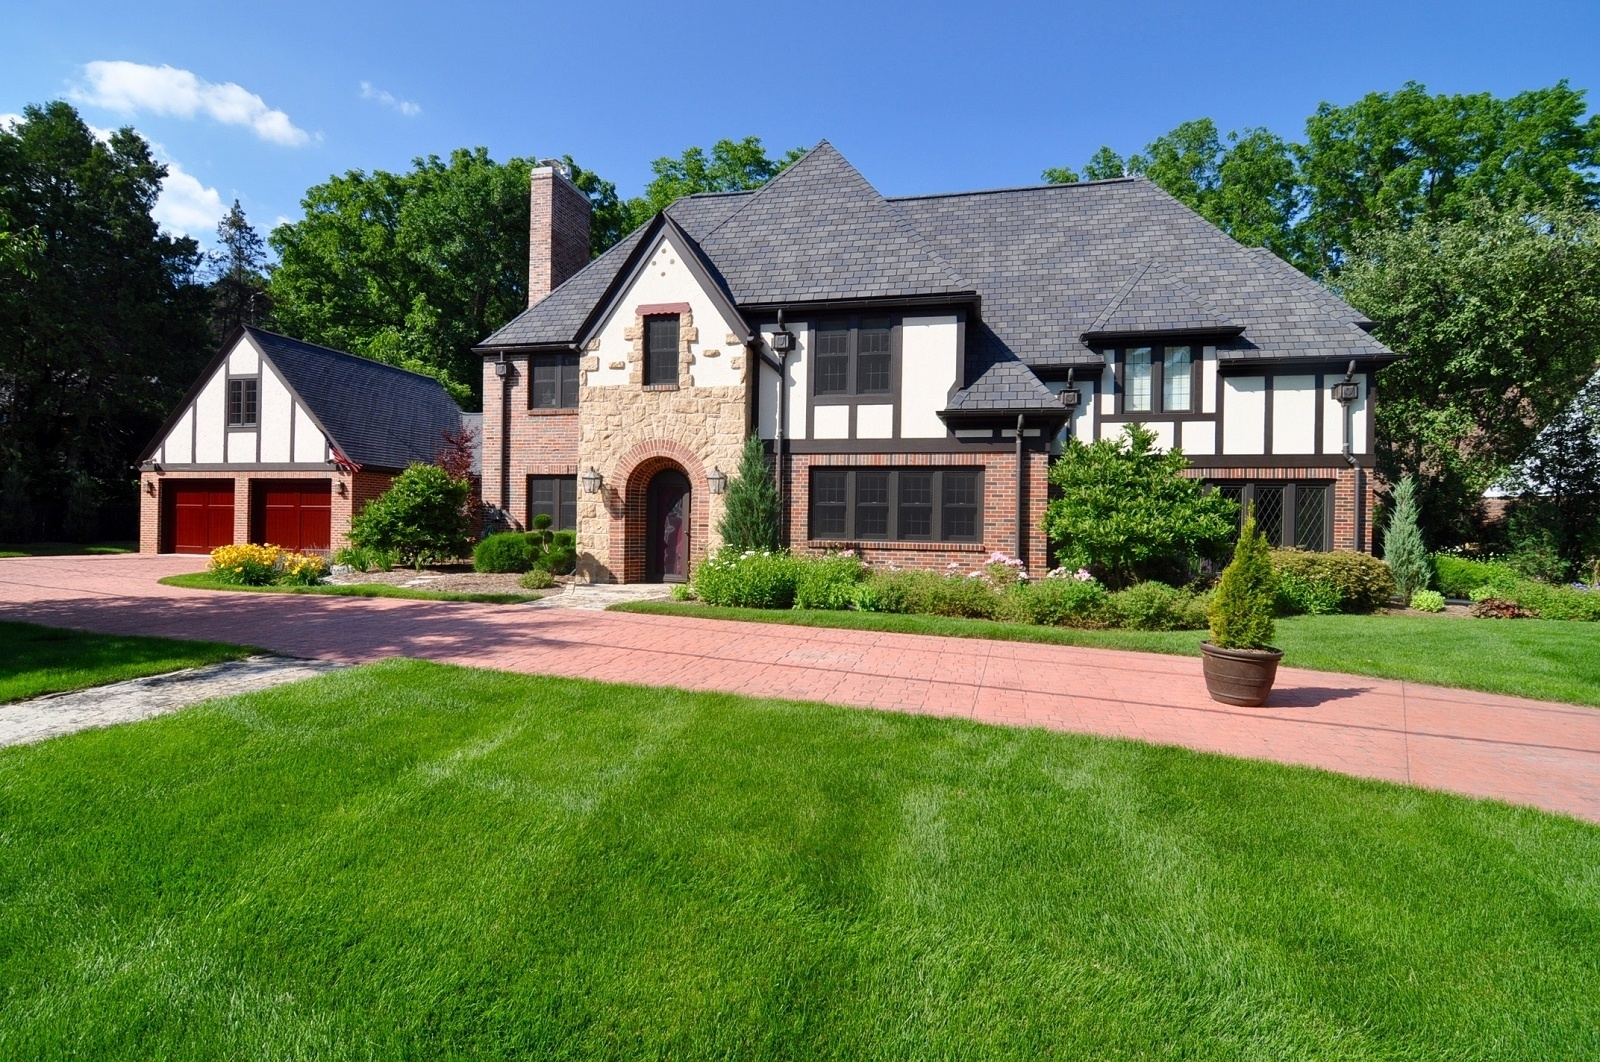 Home architecture 101 tudor for Tudor style homes for sale